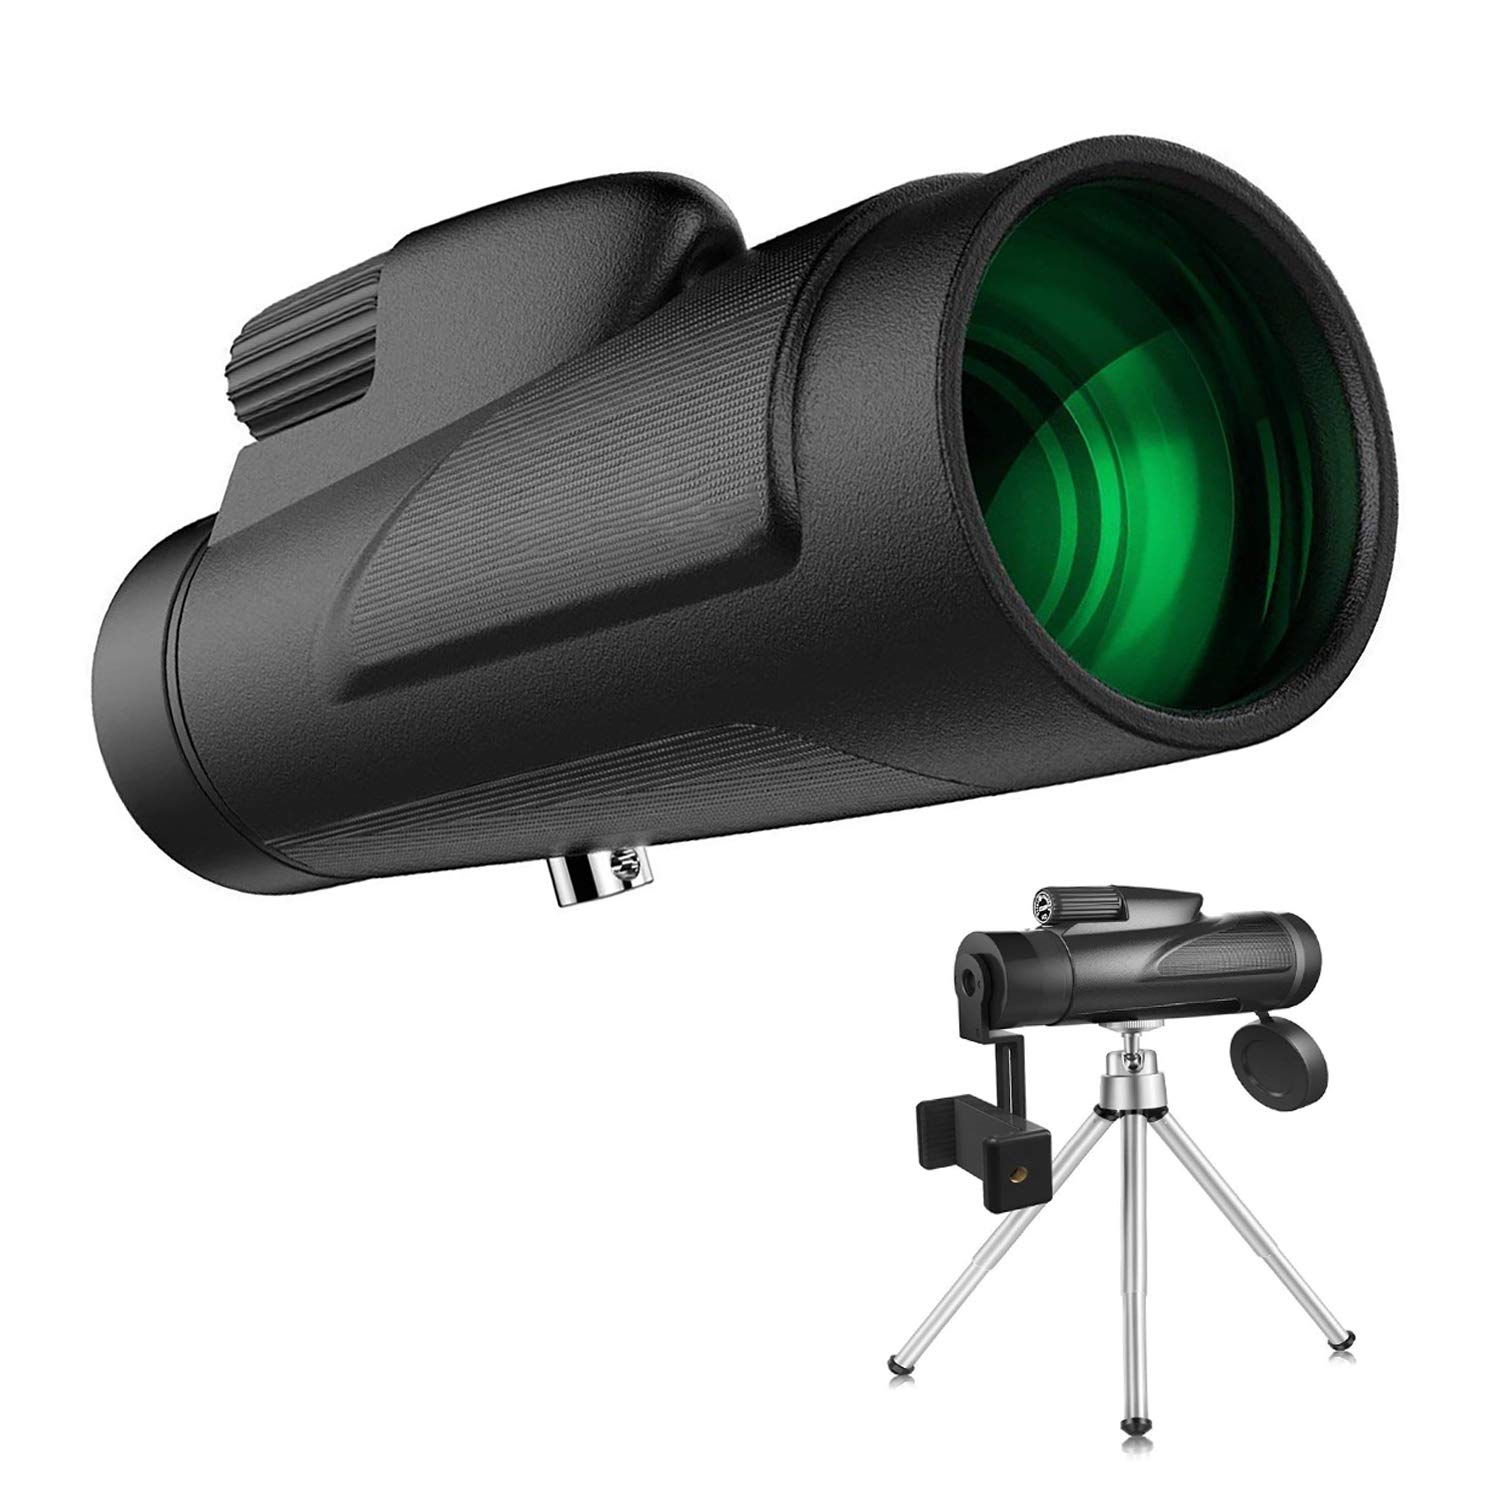 Monocular Telescopes, 12x50 Dual Focus Waterproof Spotting Scopes, Low Night Vision with Cell Phone Photography Adapter for Bird Watching Hunting Camping Hiking Travelling